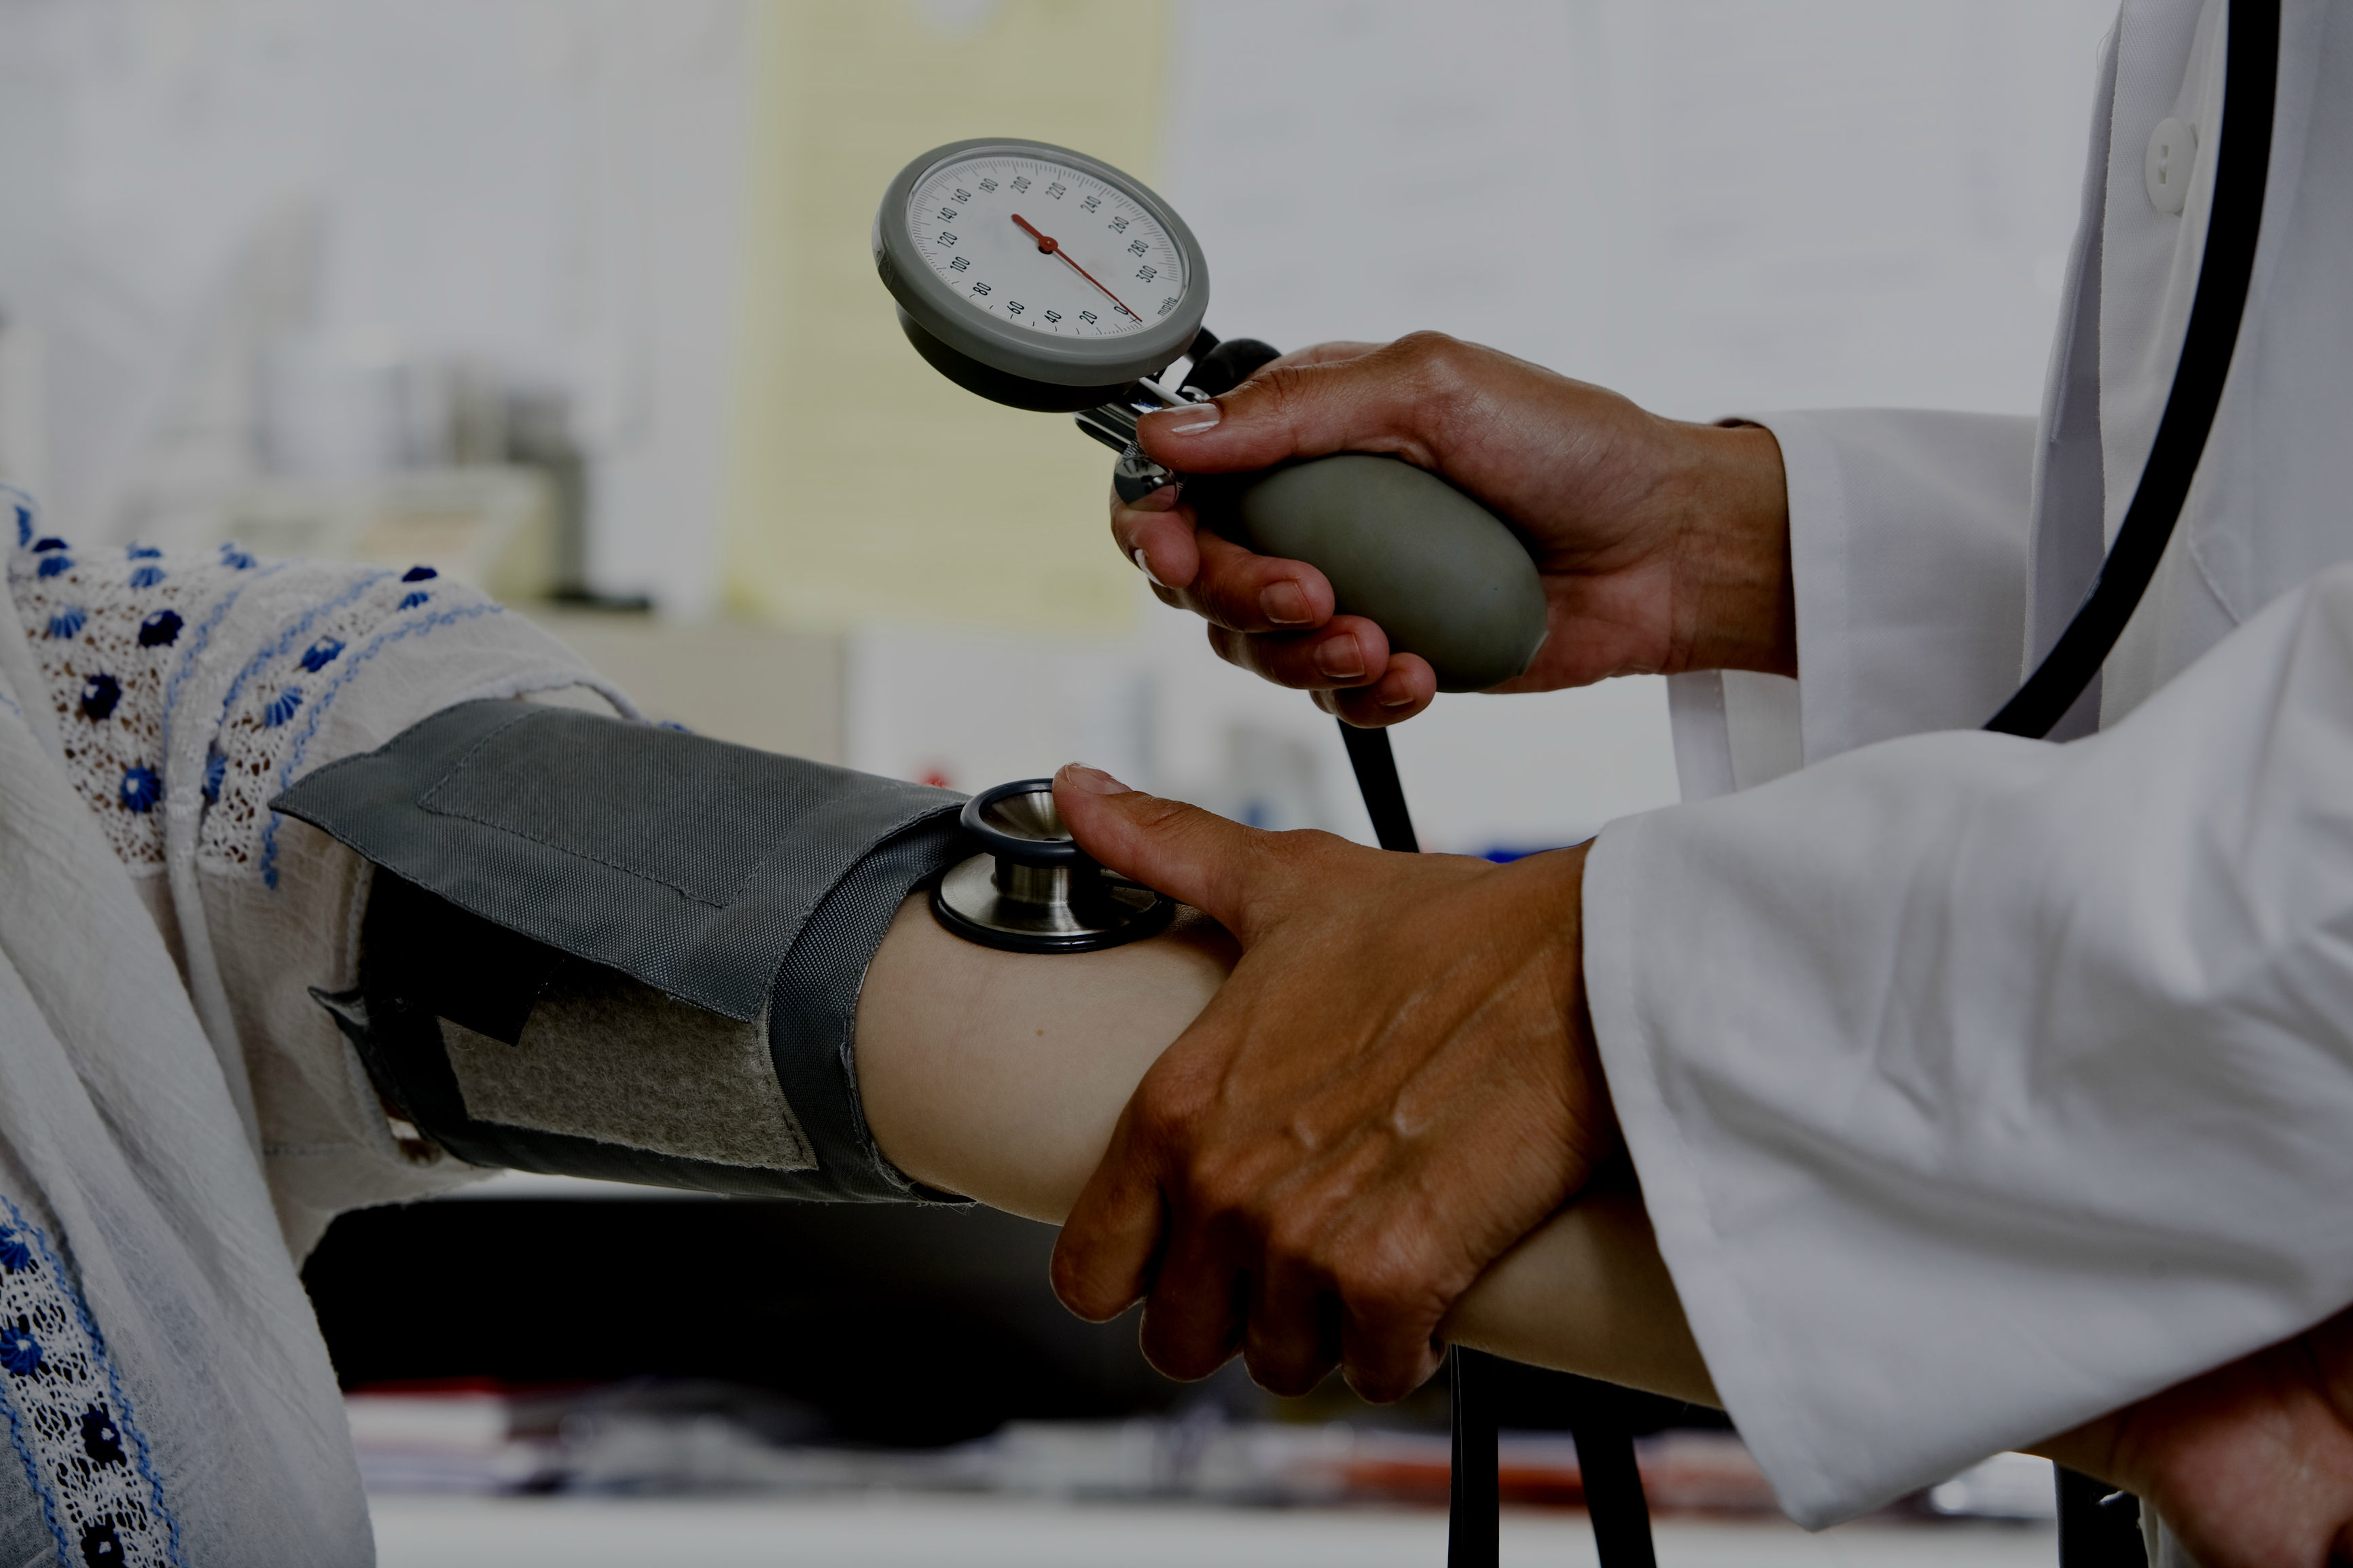 1 in 3 American adults have high blood pressure.